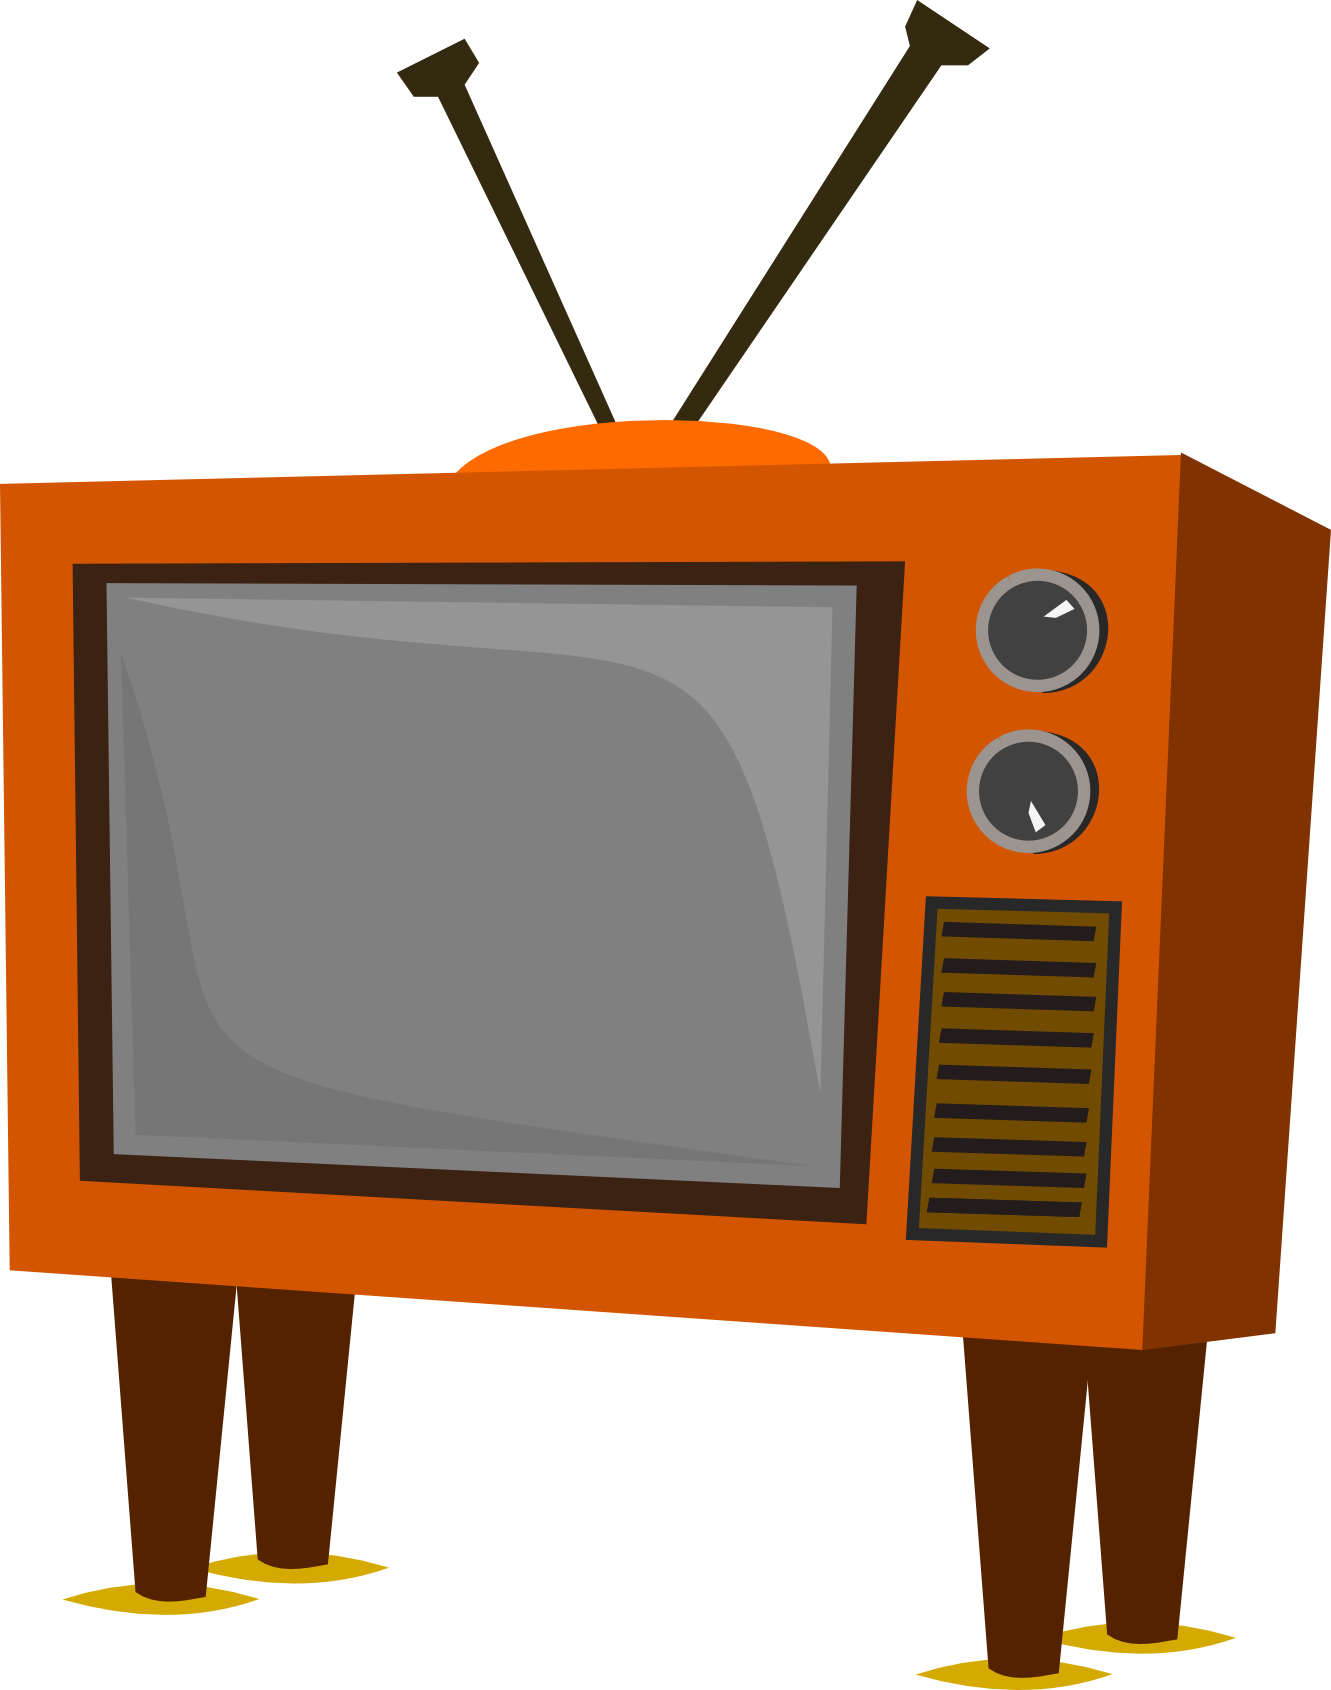 tv clip art free clipart panda free clipart images rh clipartpanda com clipart television gratuit clipart watching television